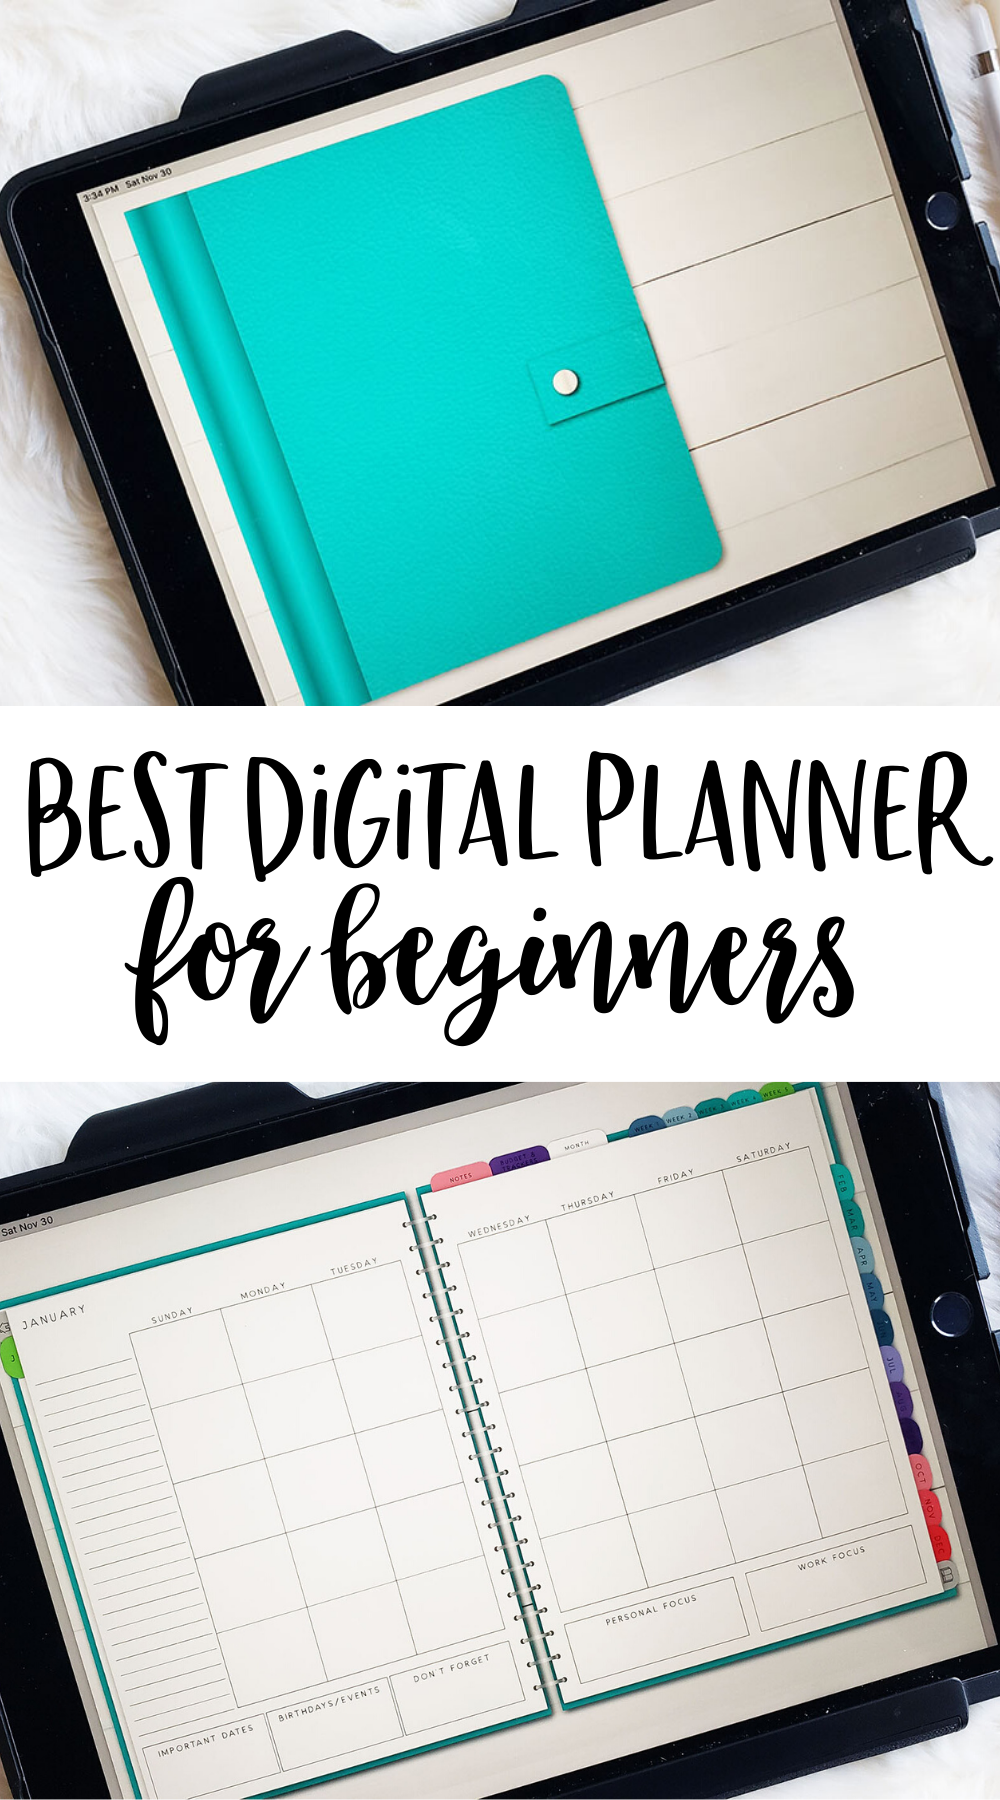 Best Digital Planner for Beginners | CCM Digitals Review - Planning Inspired